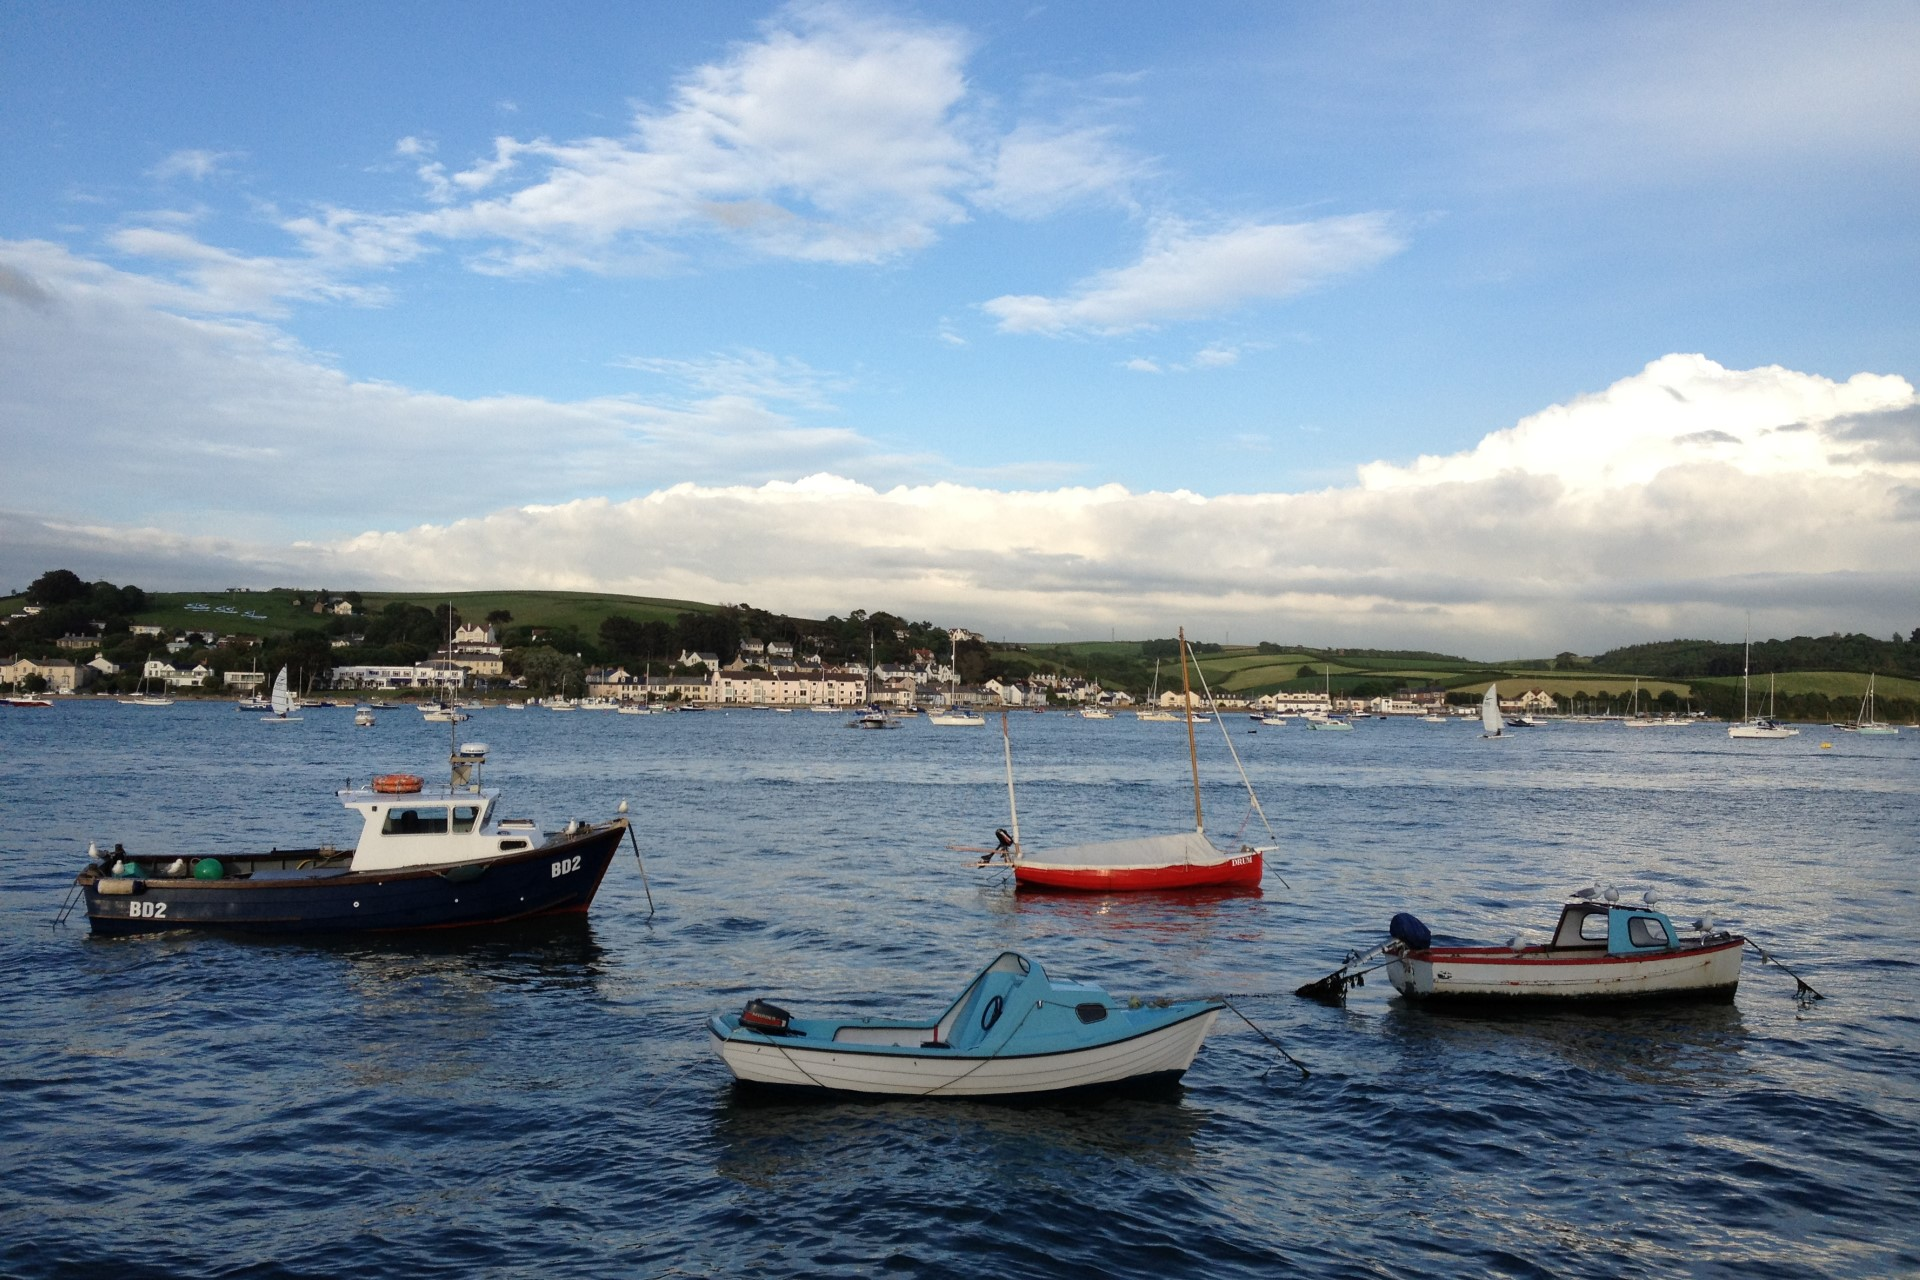 Boats on the estuary in Appledore